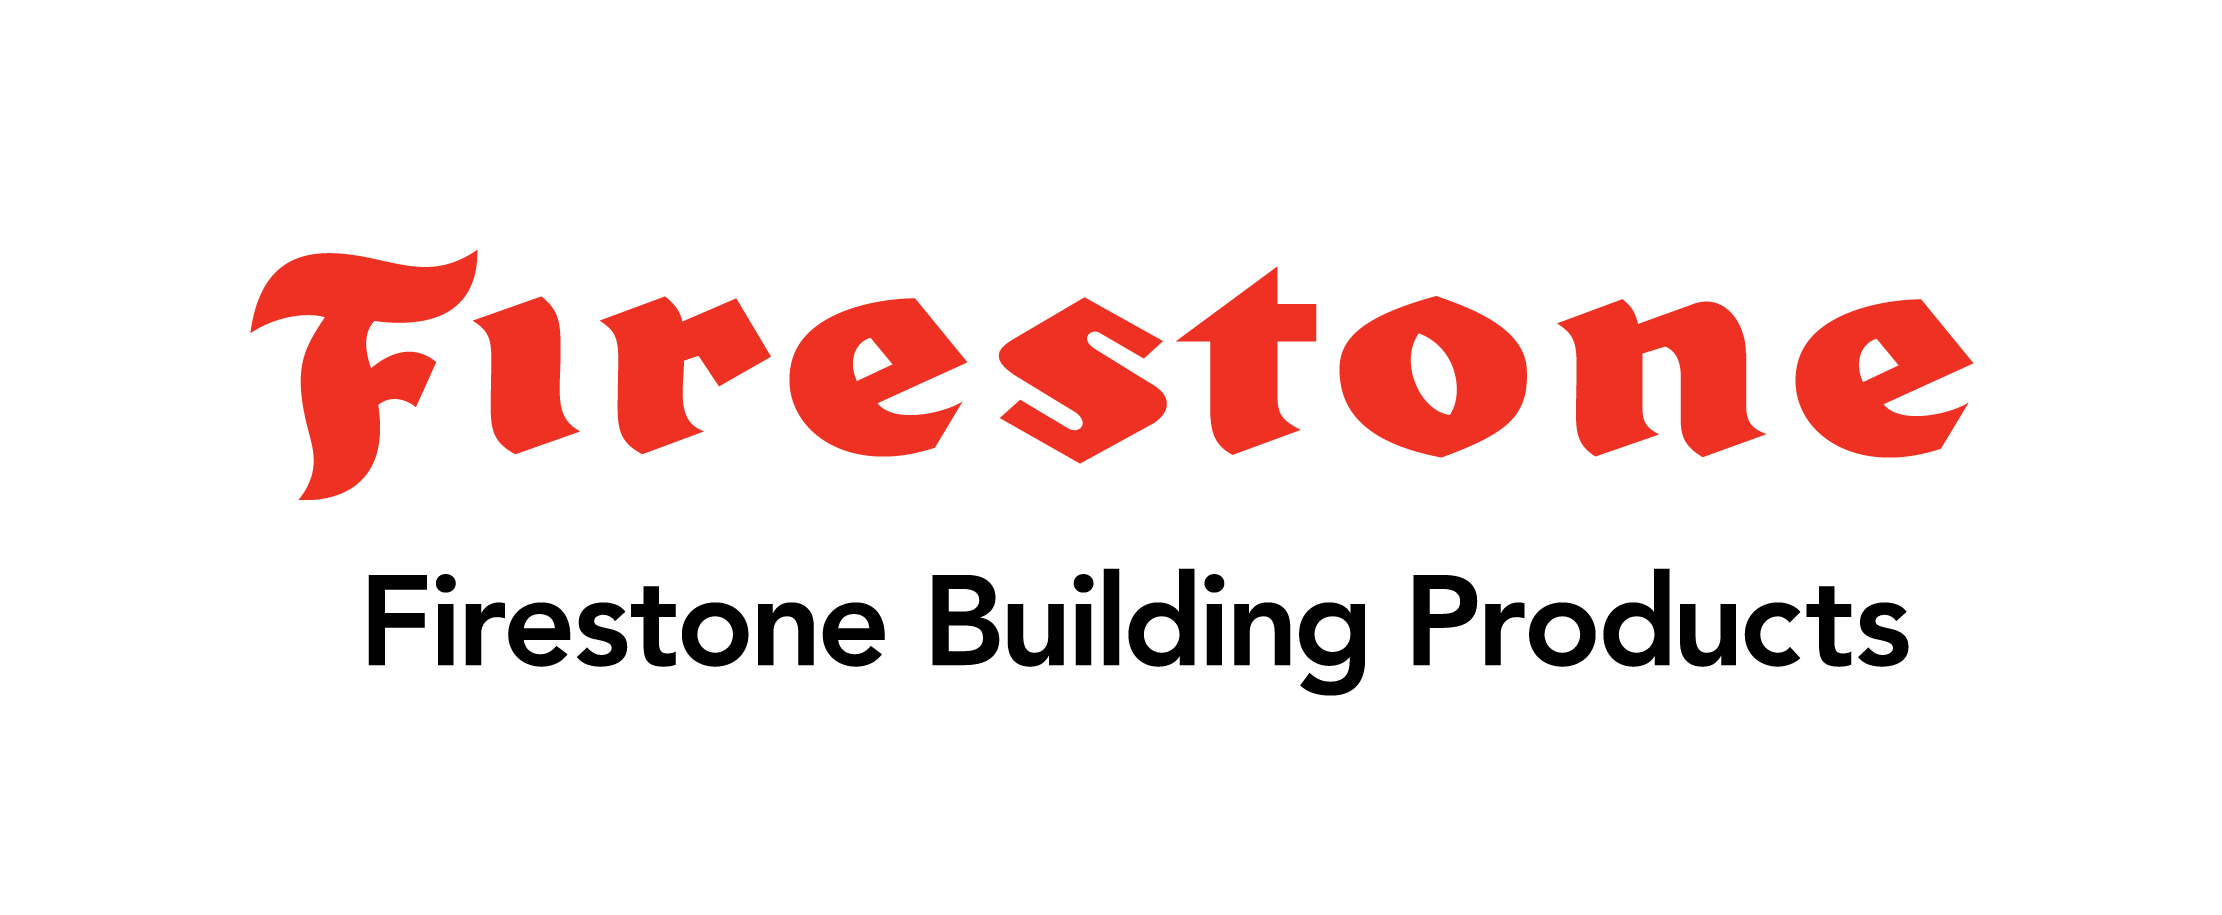 Image of Firestone logo